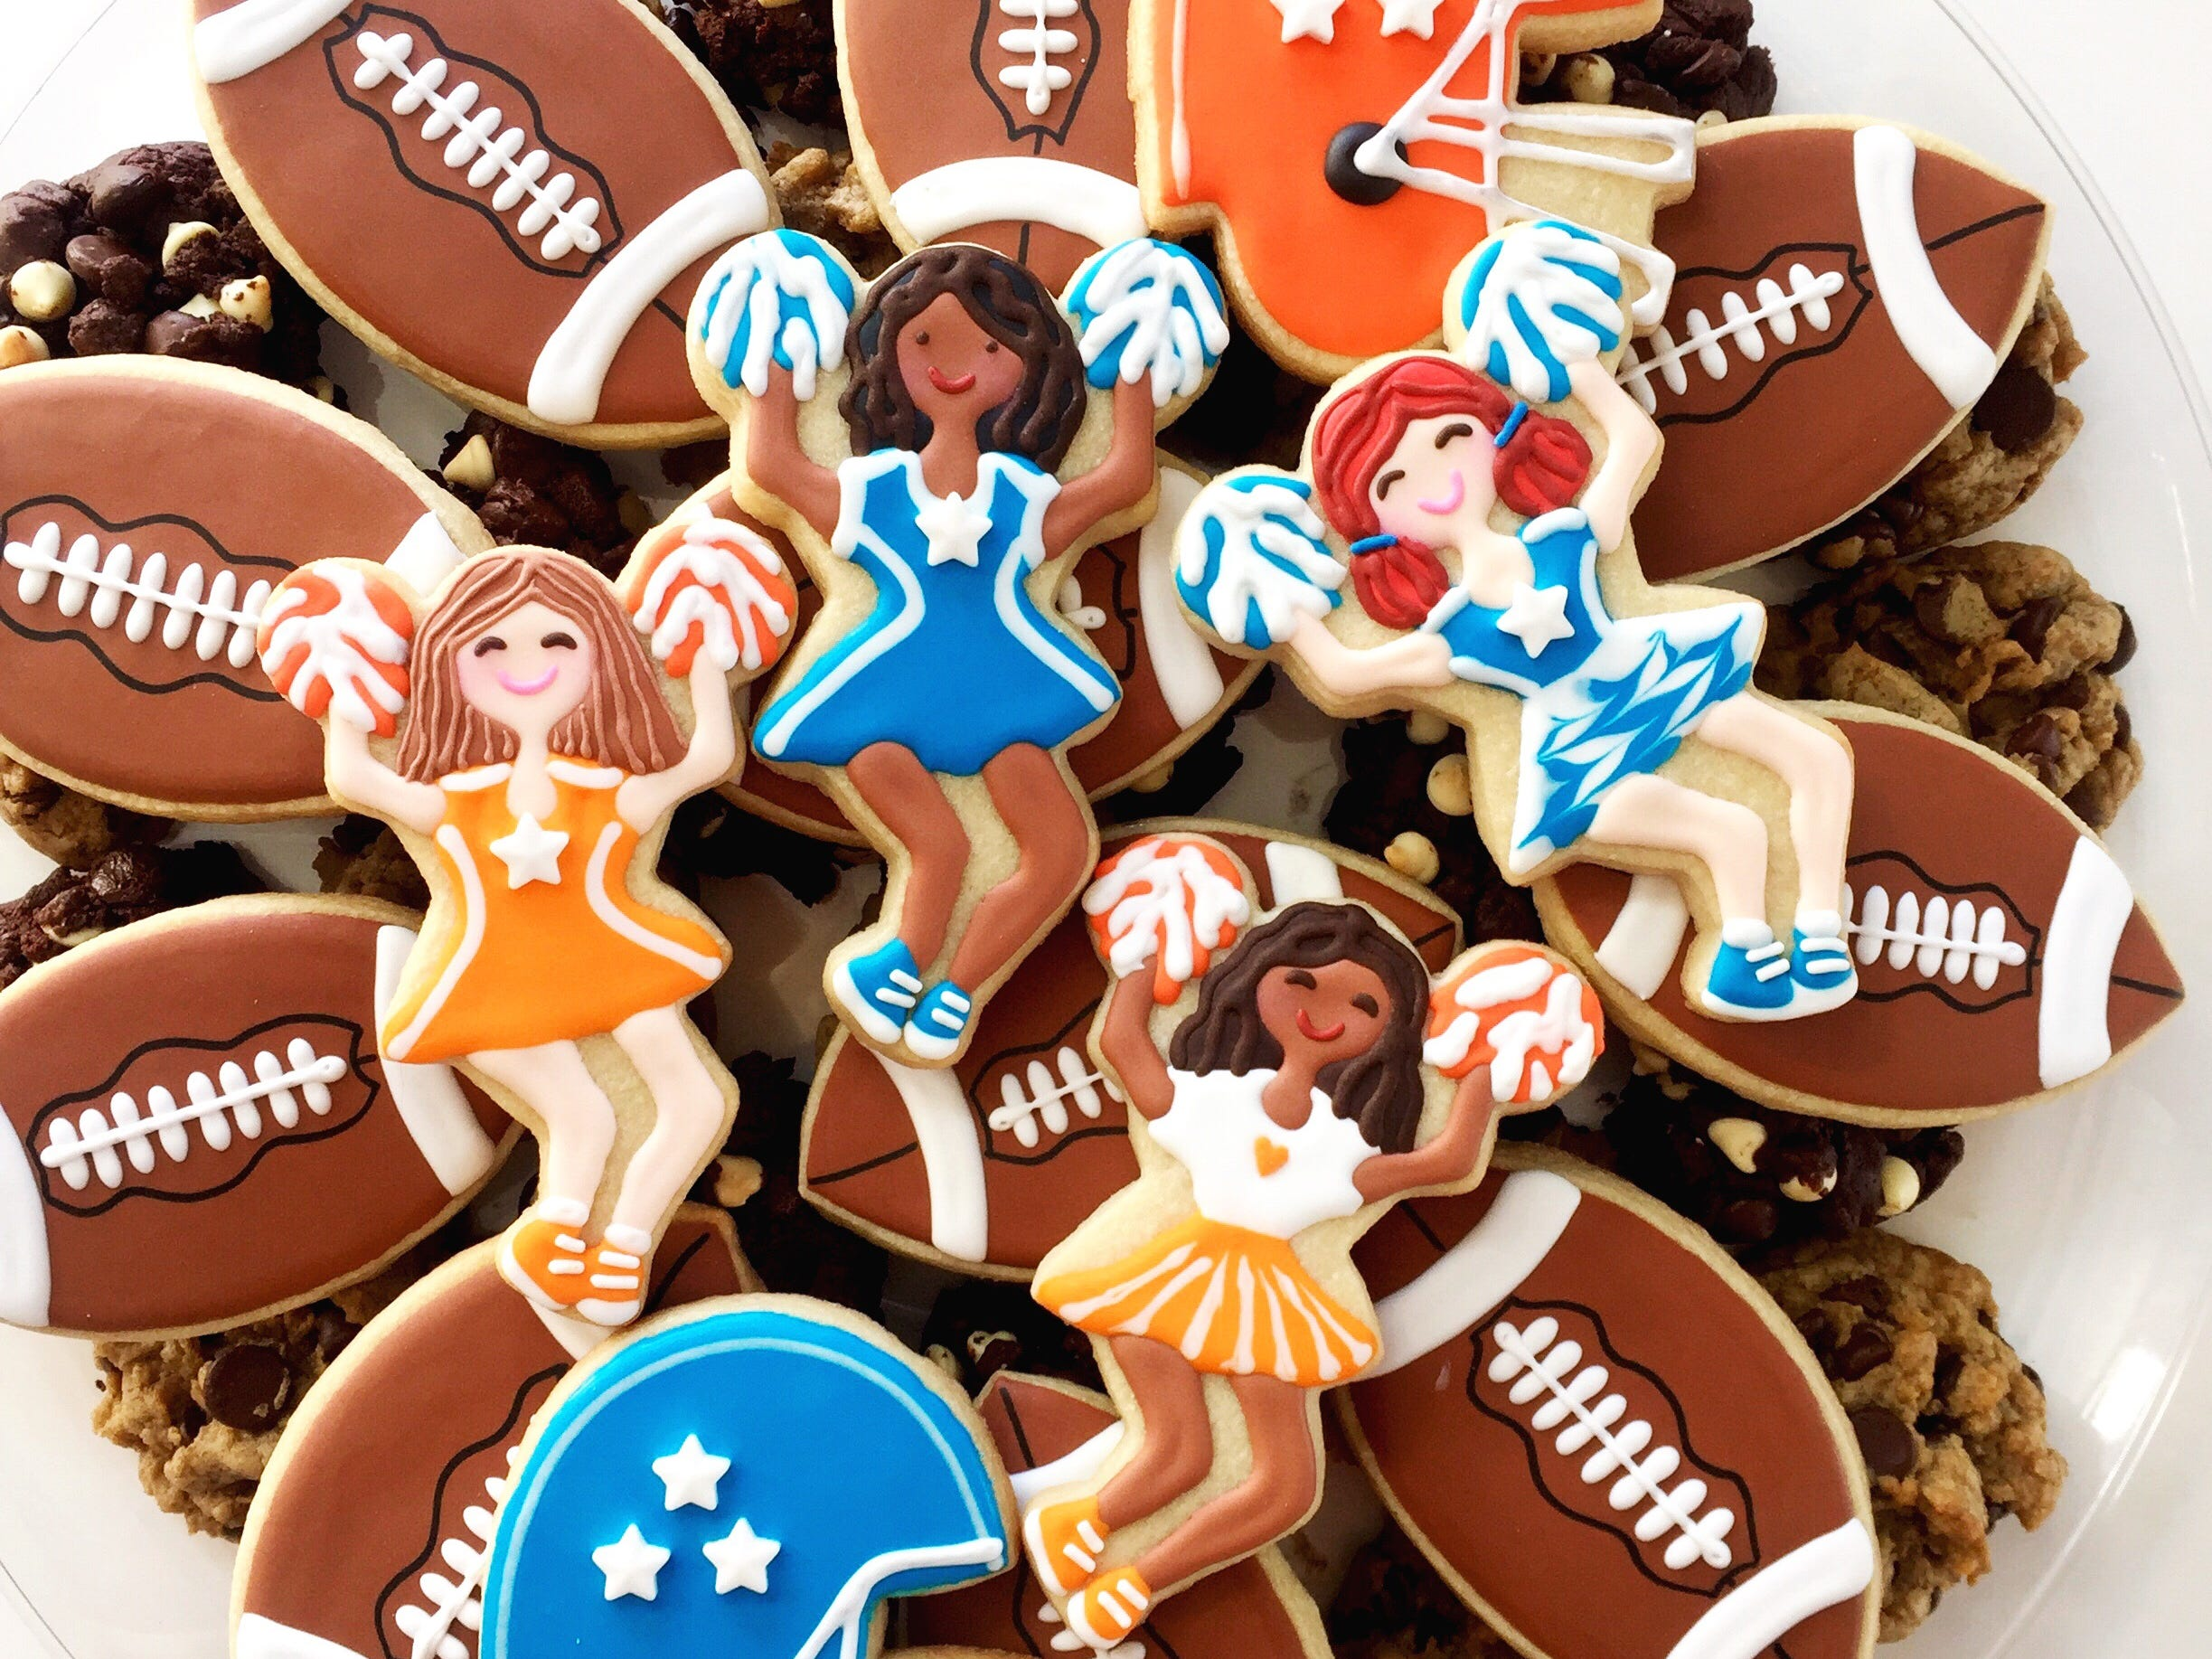 SweetDani B Cookie Kitchen in Asbury Park offers football-themed cookie platters.